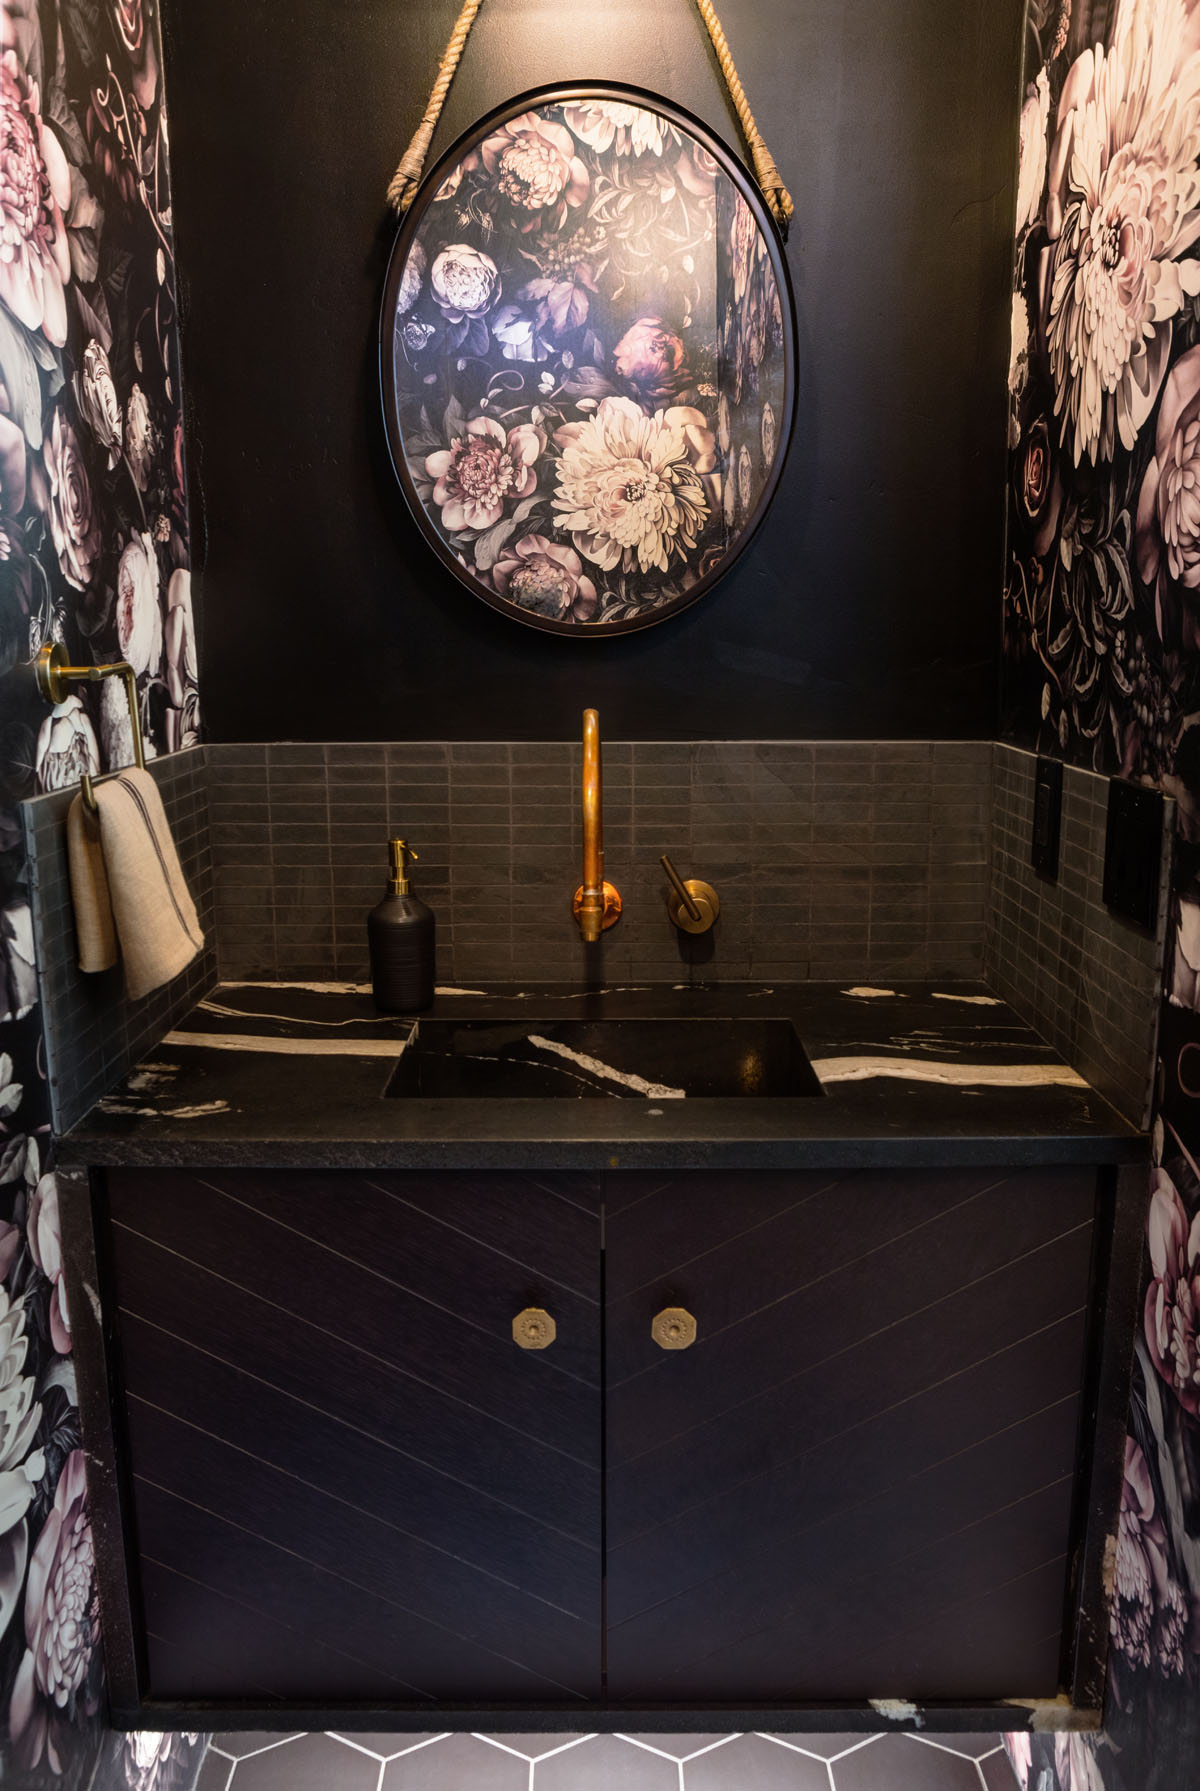 A dark bathroom with flowered wallpaper, hanging oval mirror, black marble topped vanity with gold accents as part of this modern residential design.